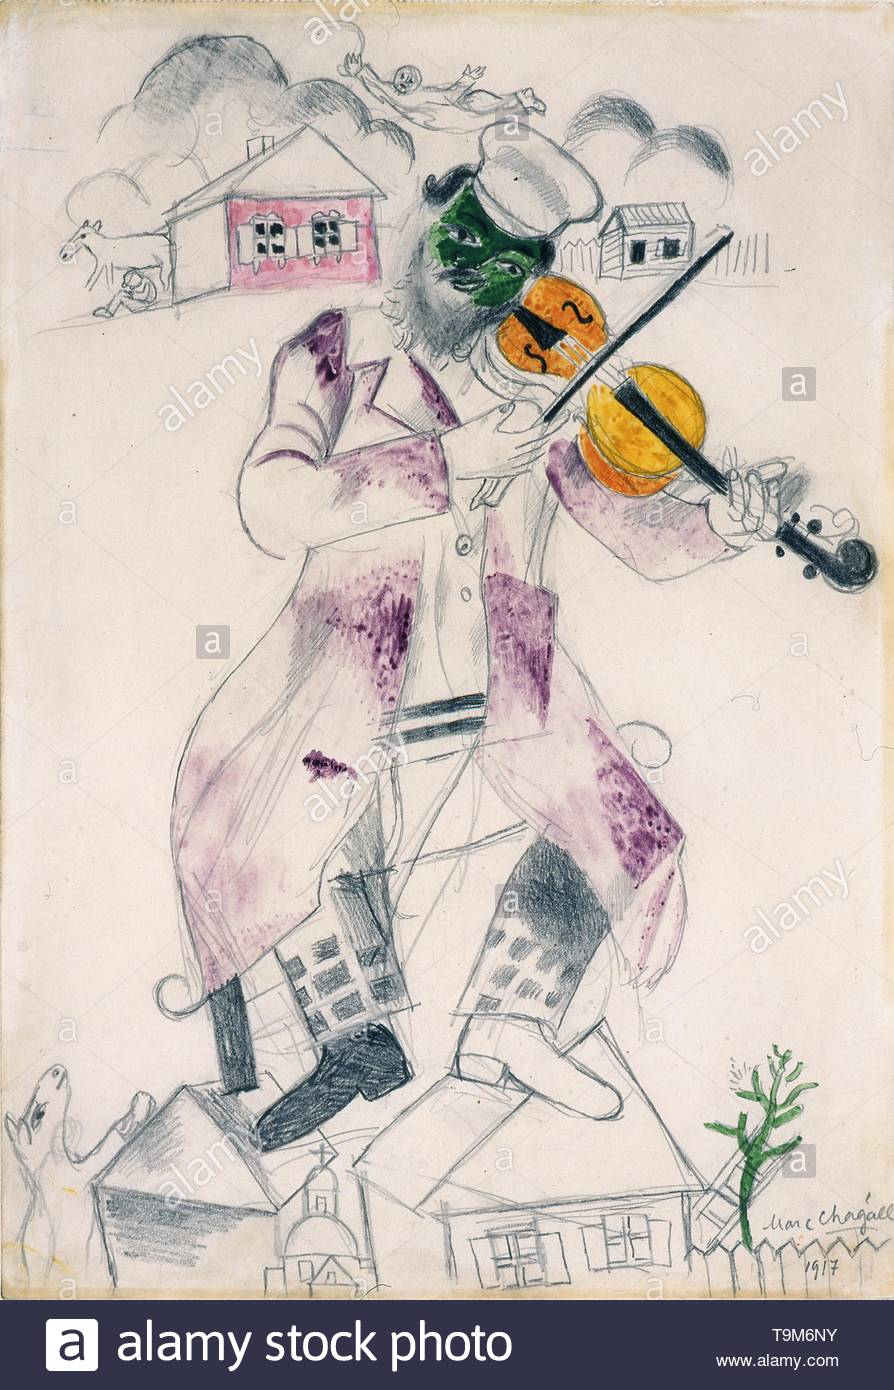 Music (Jewish Theatre). Museum: PRIVATE COLLECTION. Author: MARC CHAGALL. - Stock Image